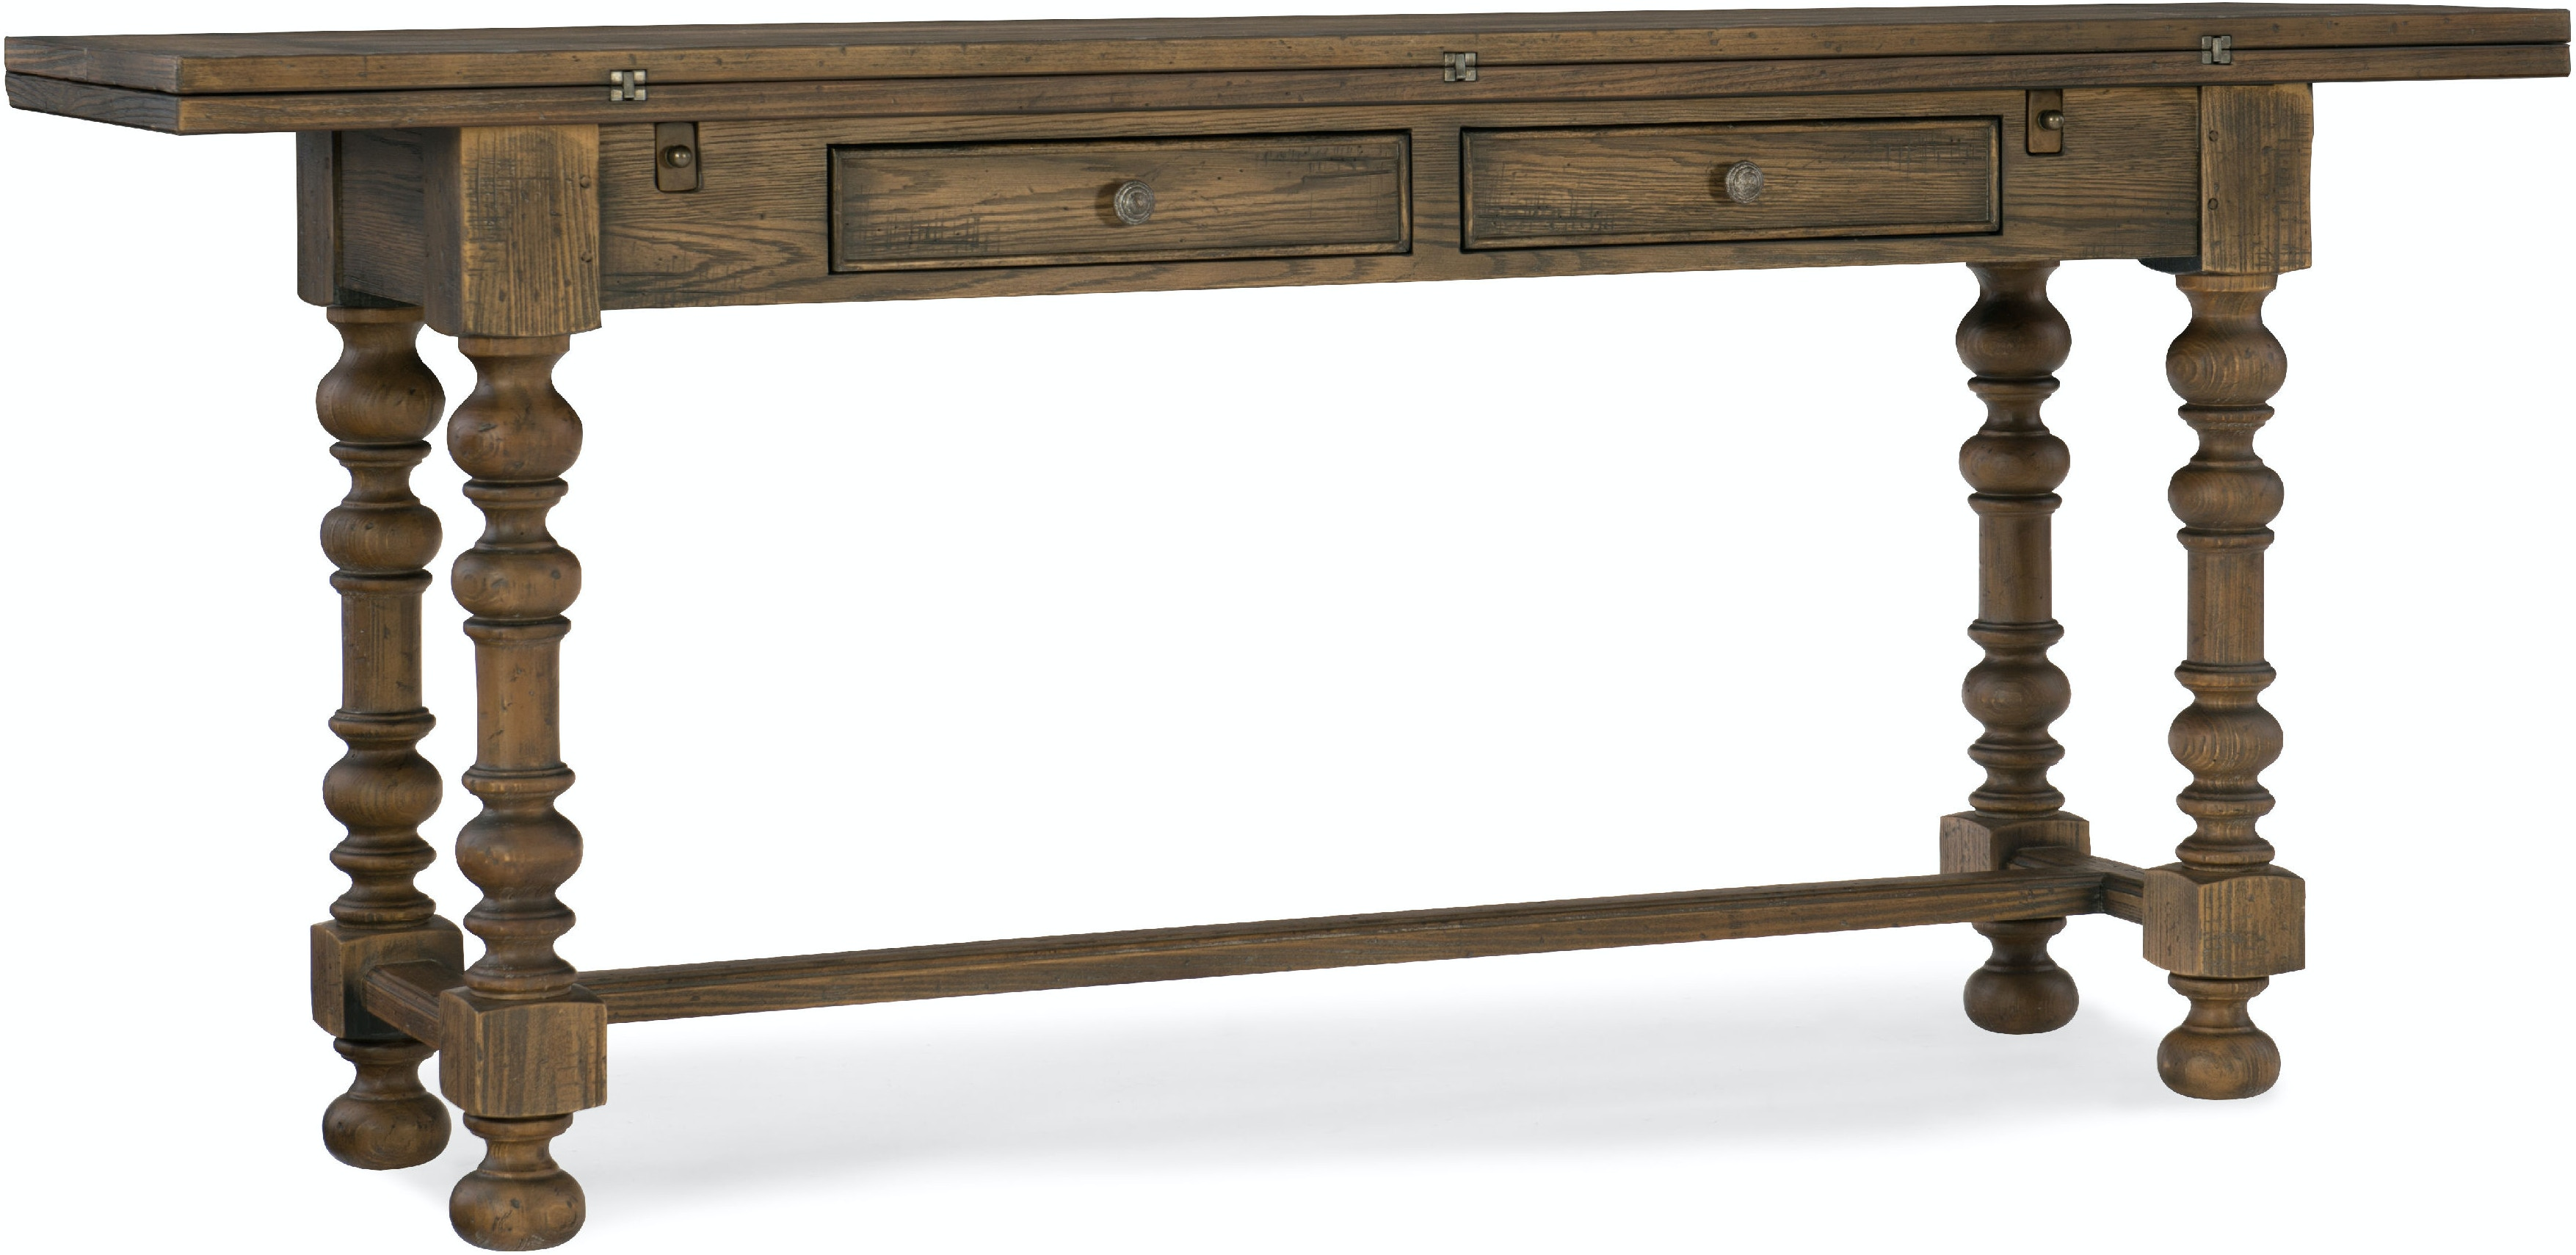 Hooker furniture living room bluewind flip top console table 5960 hooker furniture bluewind flip top console table 5960 85001 brn geotapseo Image collections